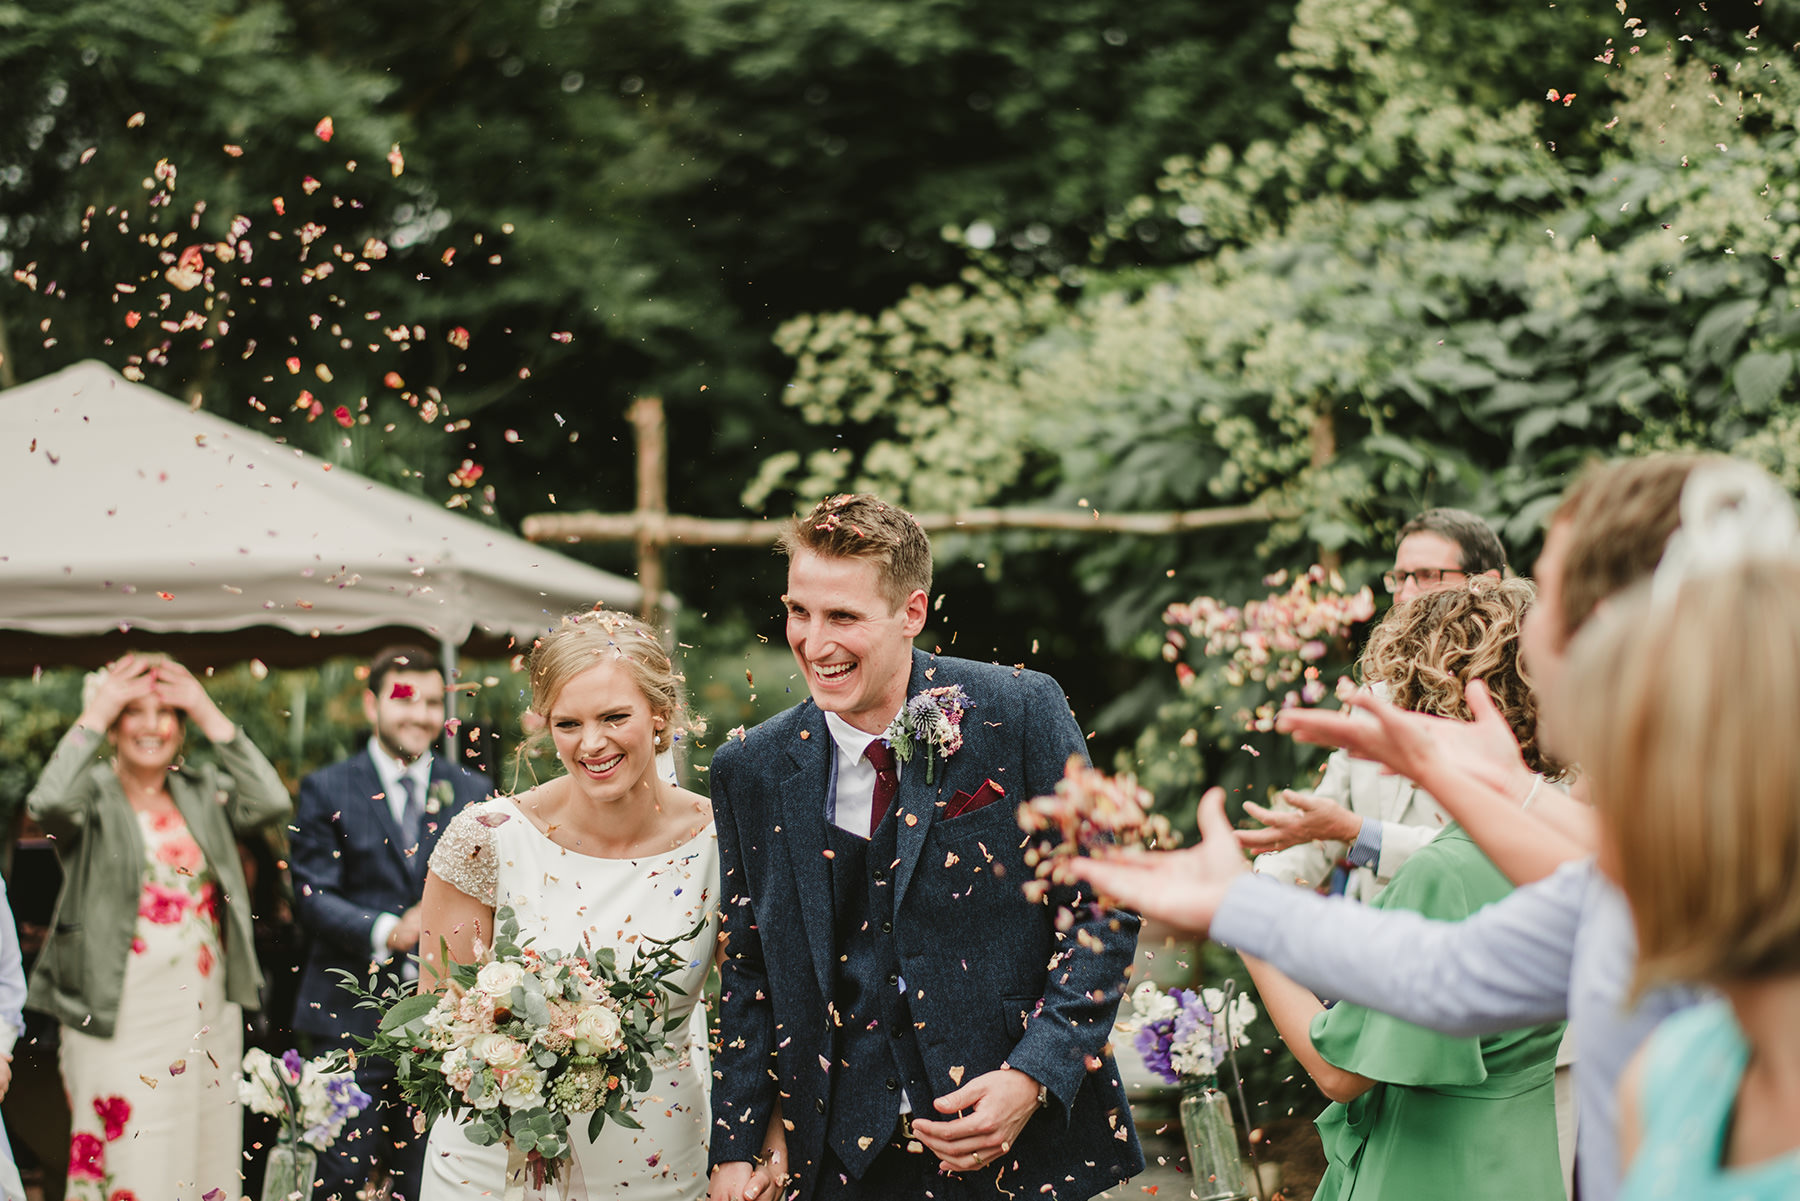 confetti throw at outdoor wedding ceremony in Ireland